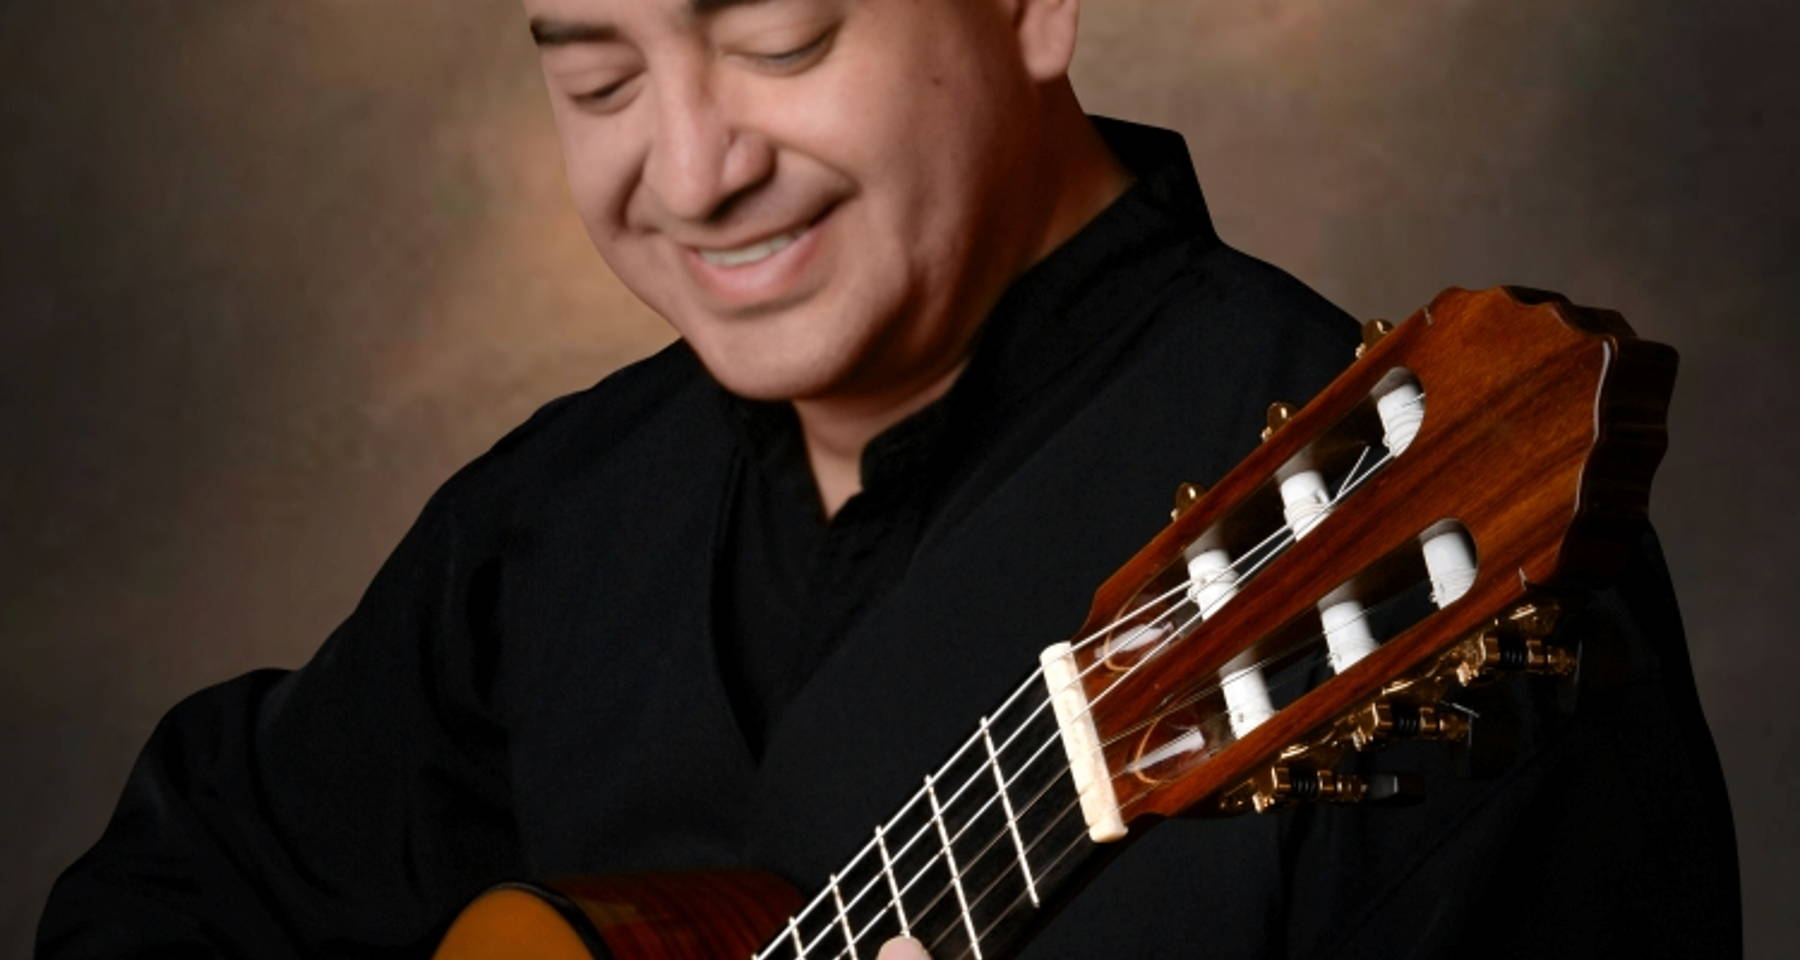 Classical guitar concert by Marcos Puña